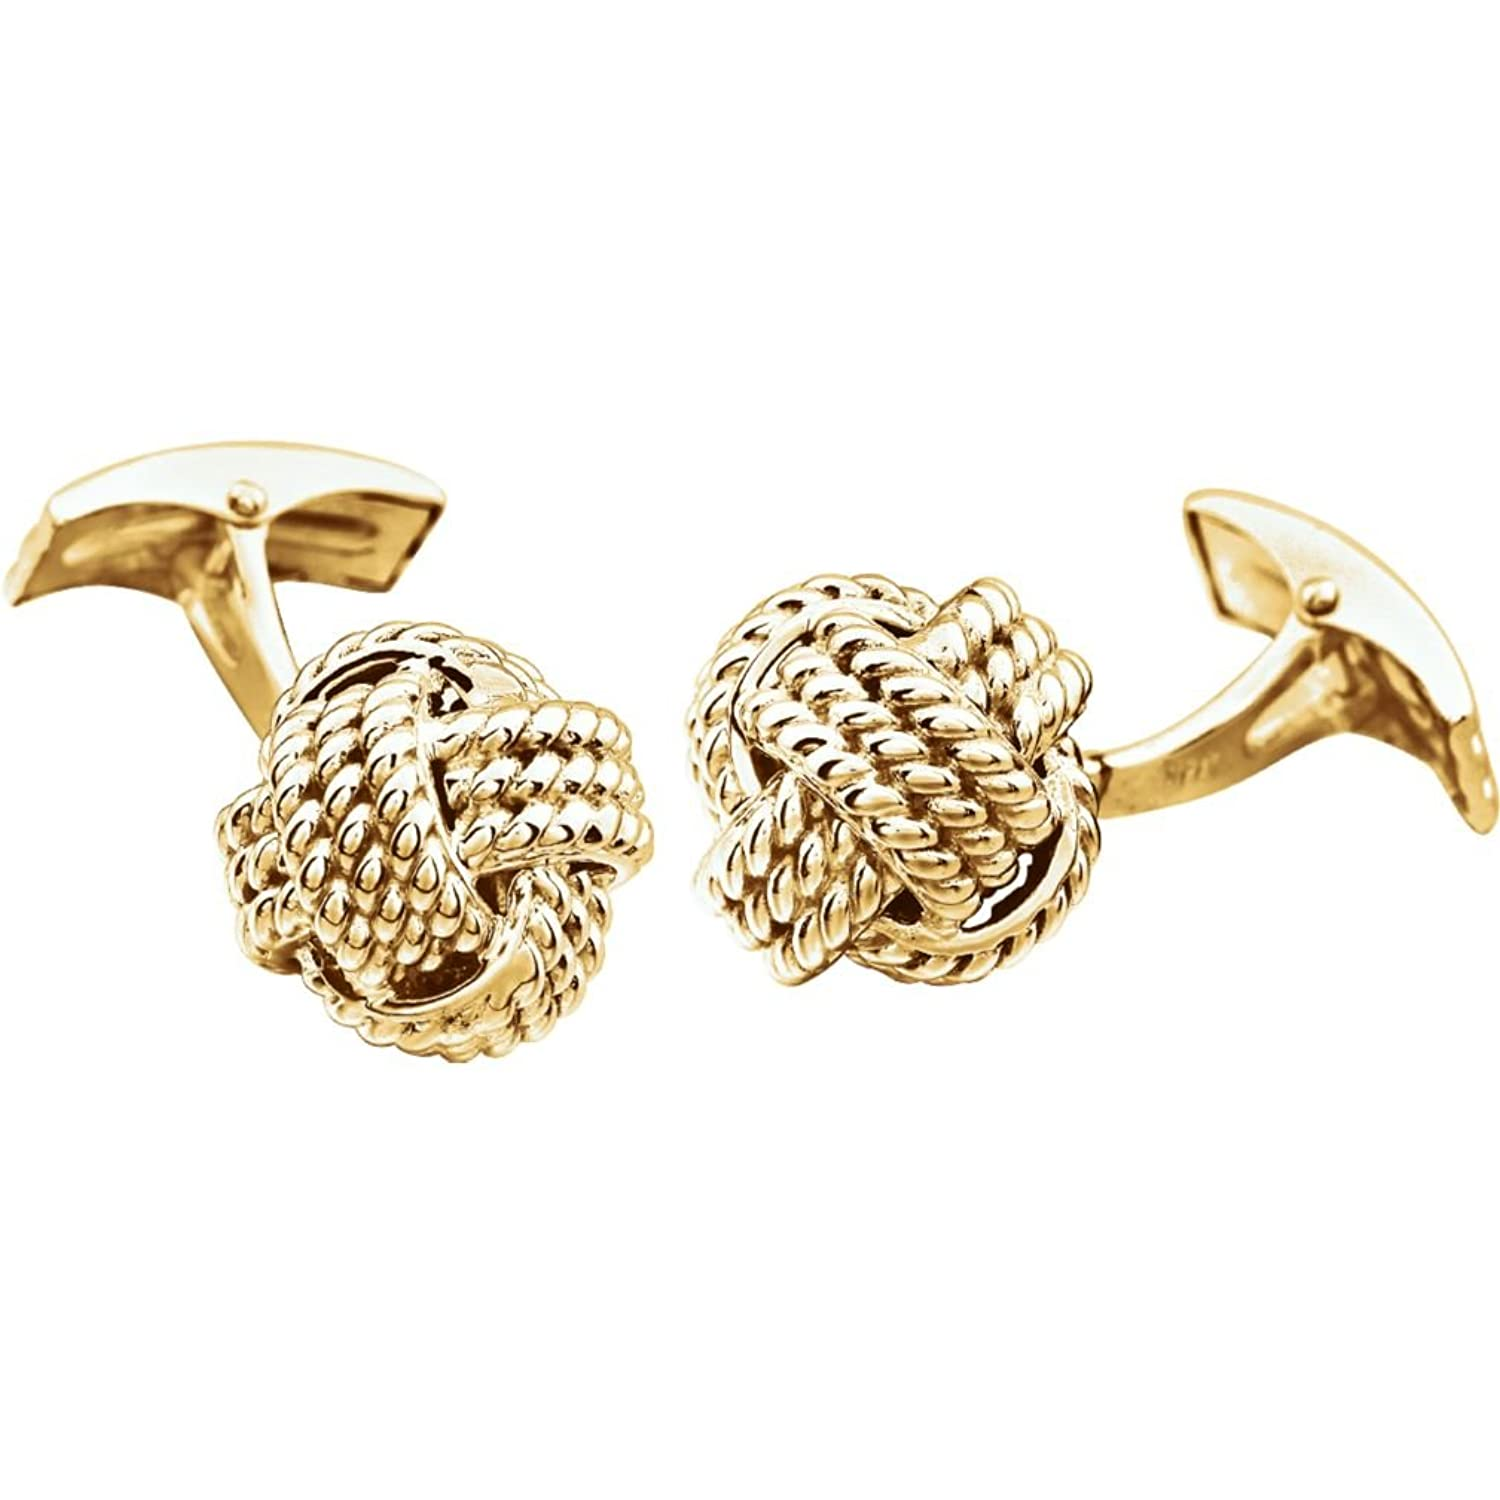 Rope Trim Love Knot 14k Yellow Gold Cuff Links, 15MM